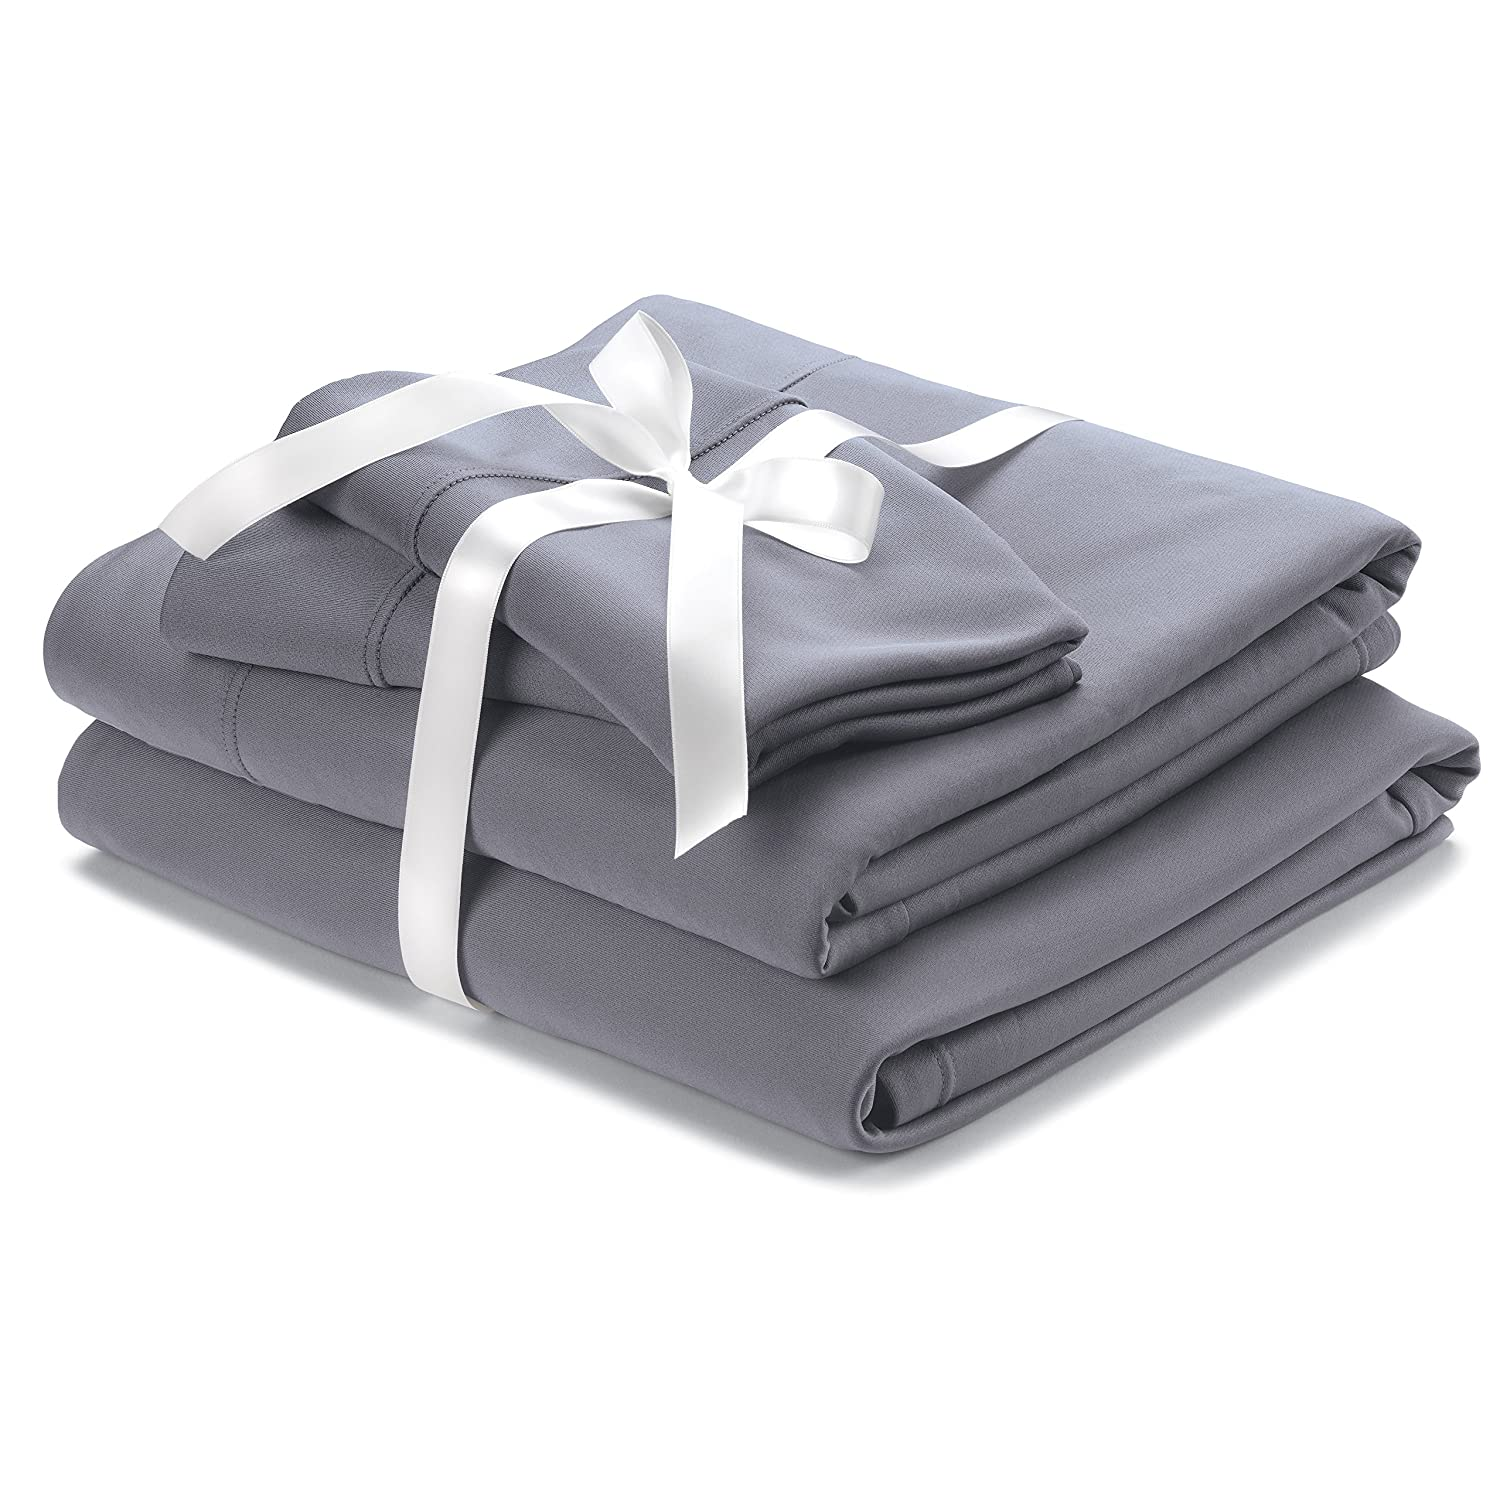 Amazon.com: Wicked Sheets Moisture Wicking + Cooling Bed Sheet Set